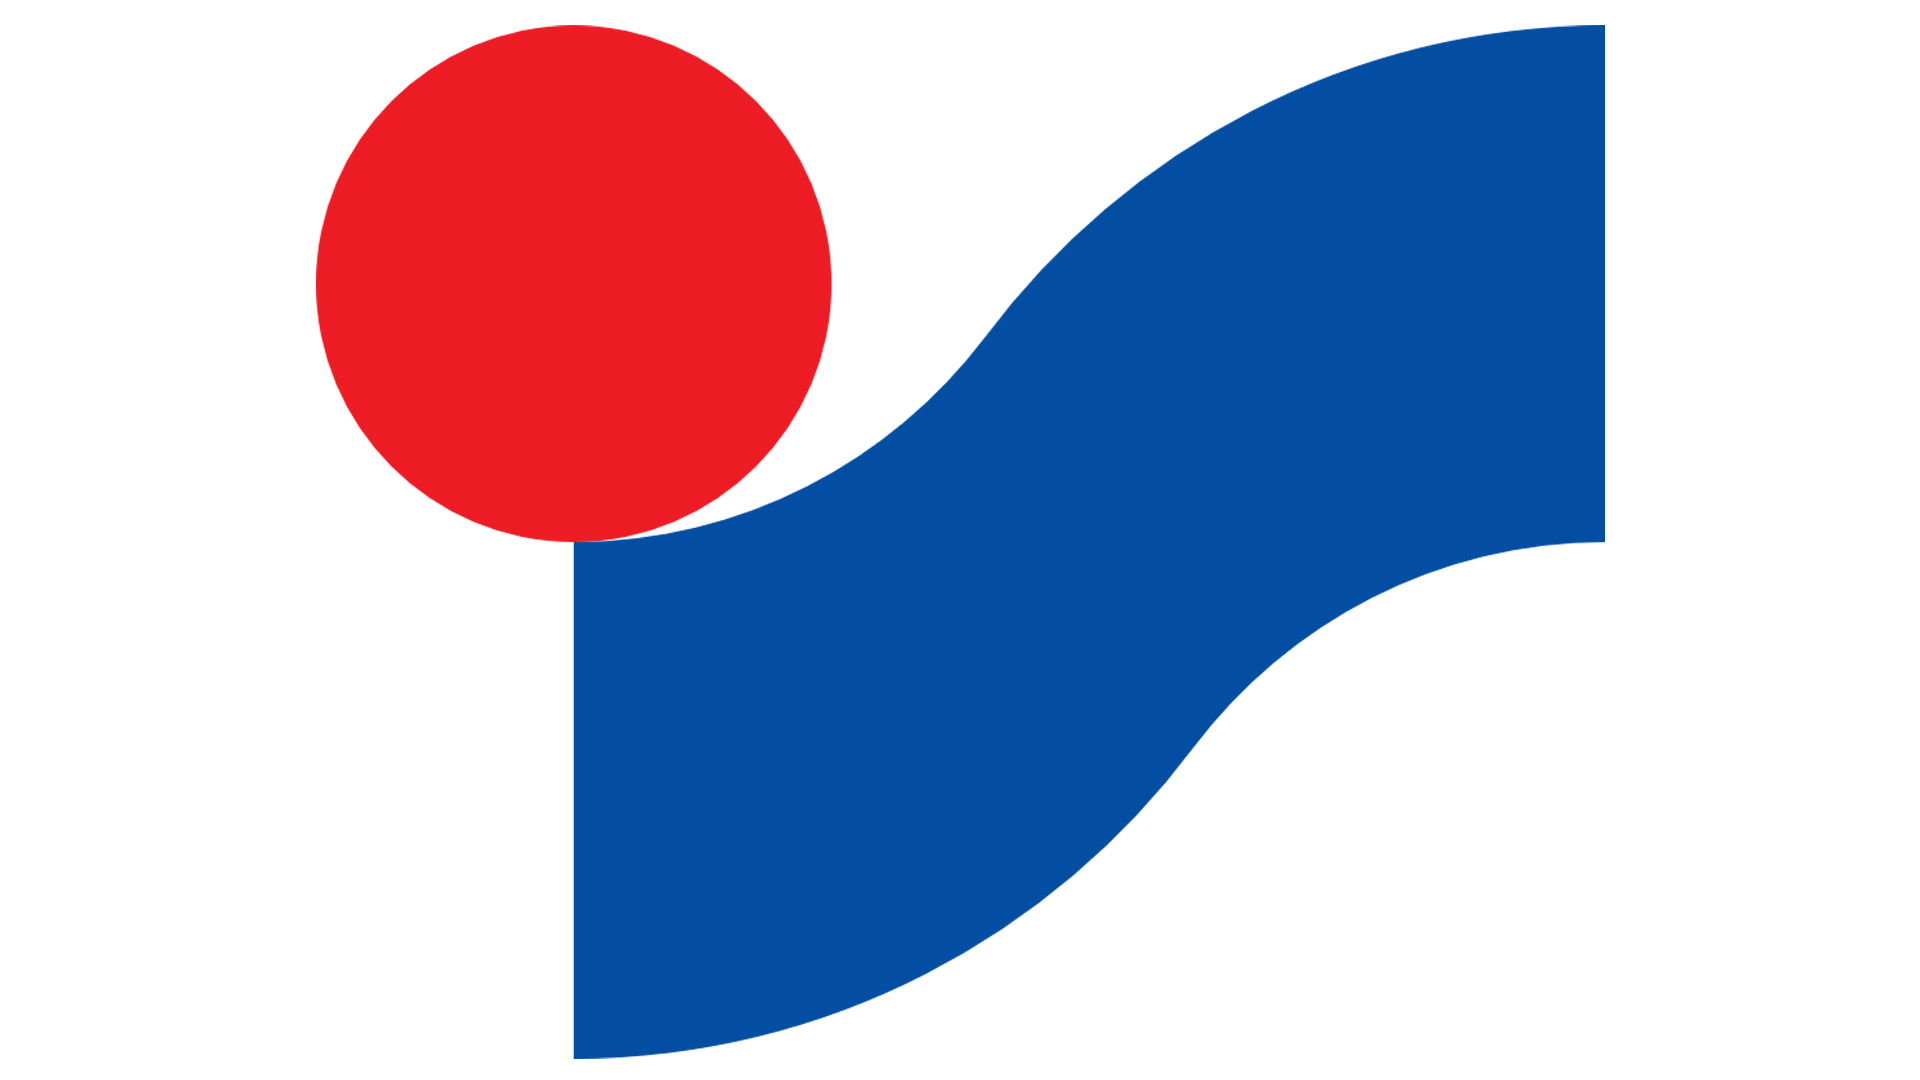 Top Life Insurance Companies >> Intersport Logo, Intersport Symbol, Meaning, History and ...